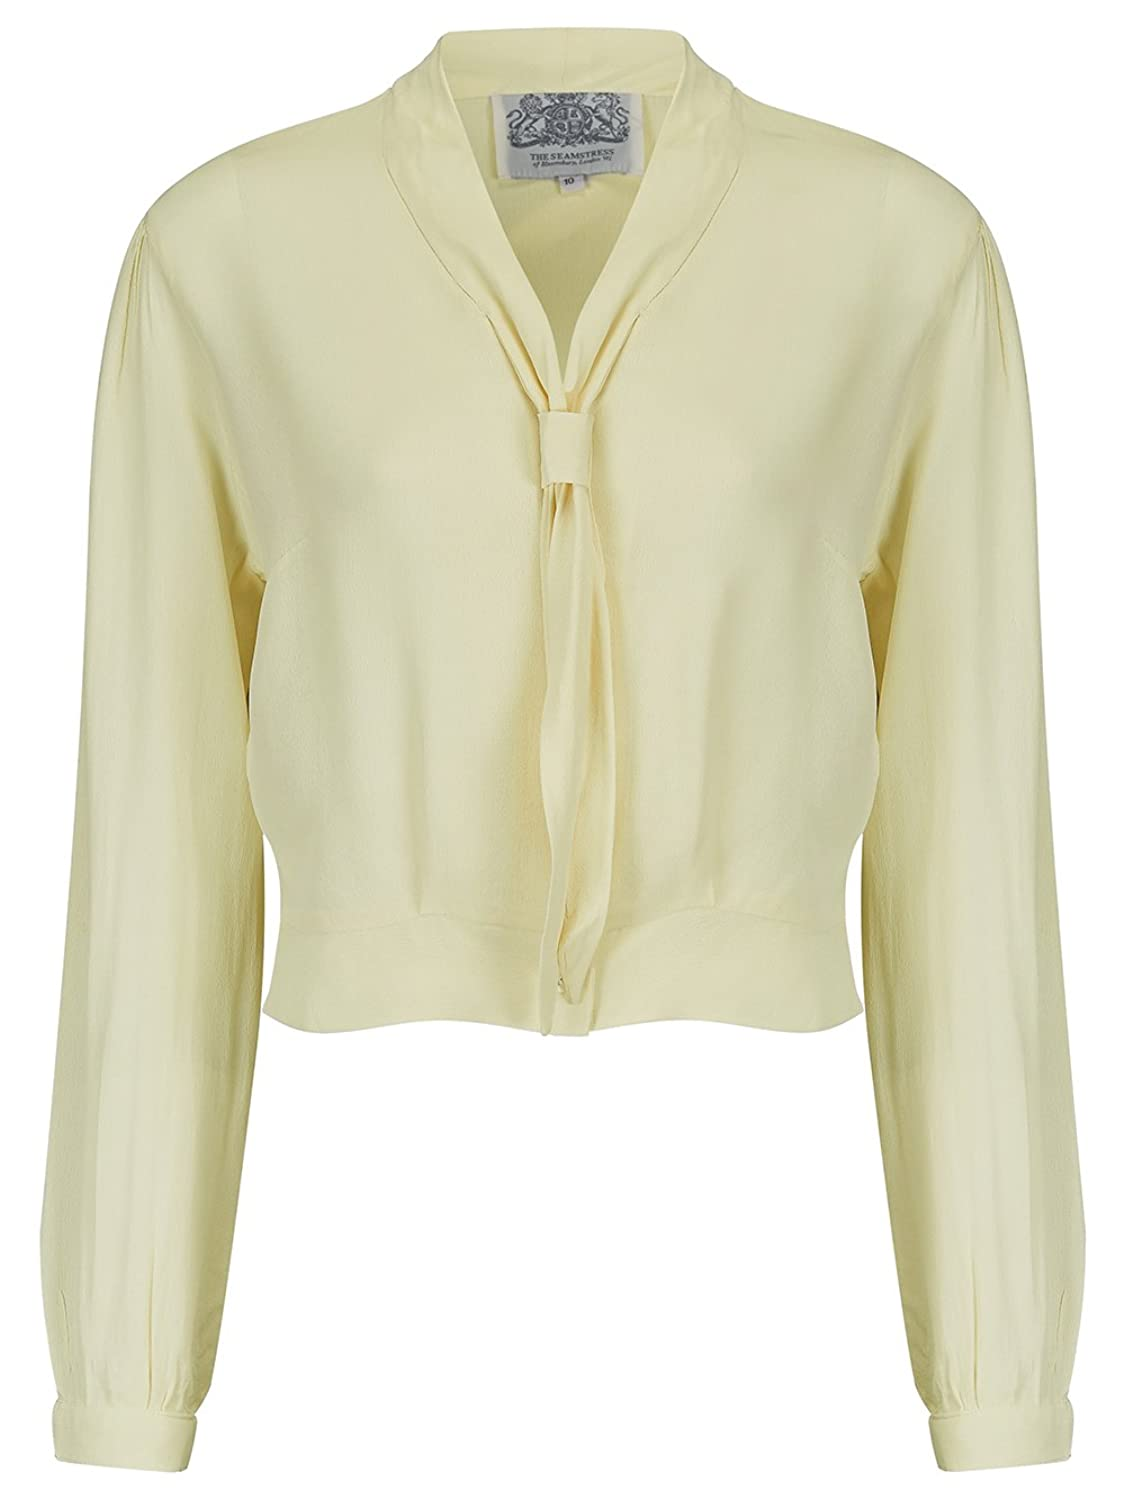 1940s Blouses and Tops 1940s Authentic Vintage Inspired Bonnie Blouse with Long Sleeve in Cream by The Seamstress of Bloomsbury £39.00 AT vintagedancer.com